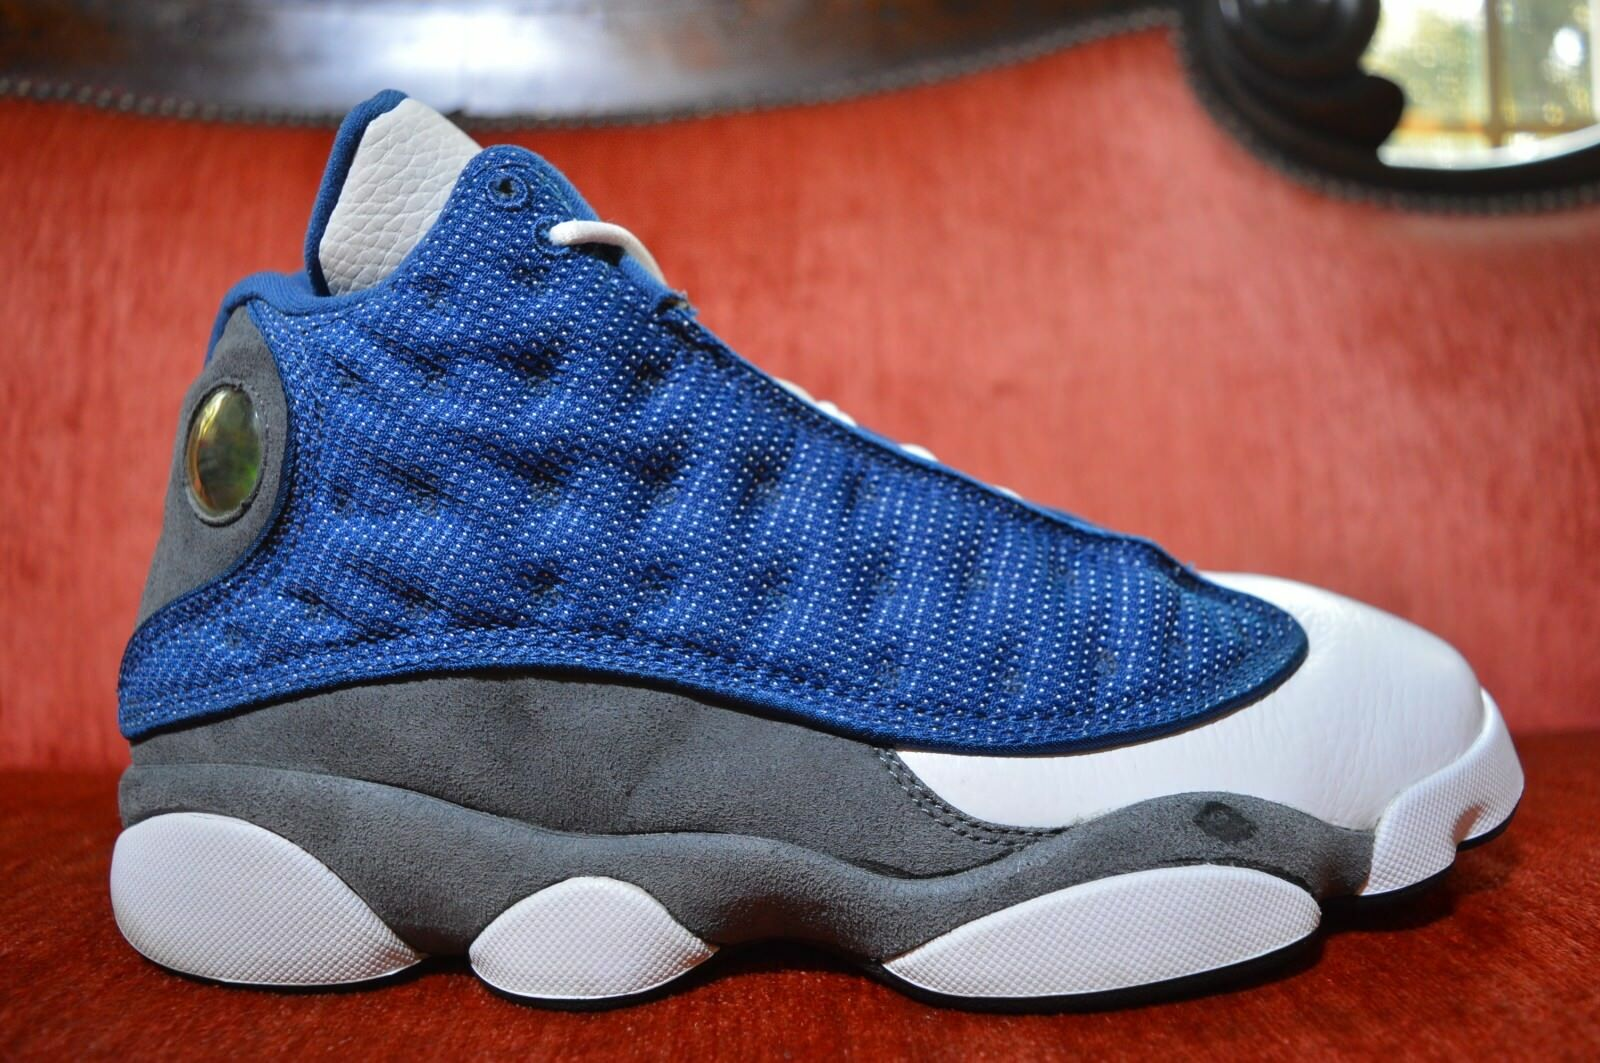 the latest 26361 8a102 ... get nike air jordan 13 xiii retro azul frances universidad azul zapatos  flint gris 414571 401